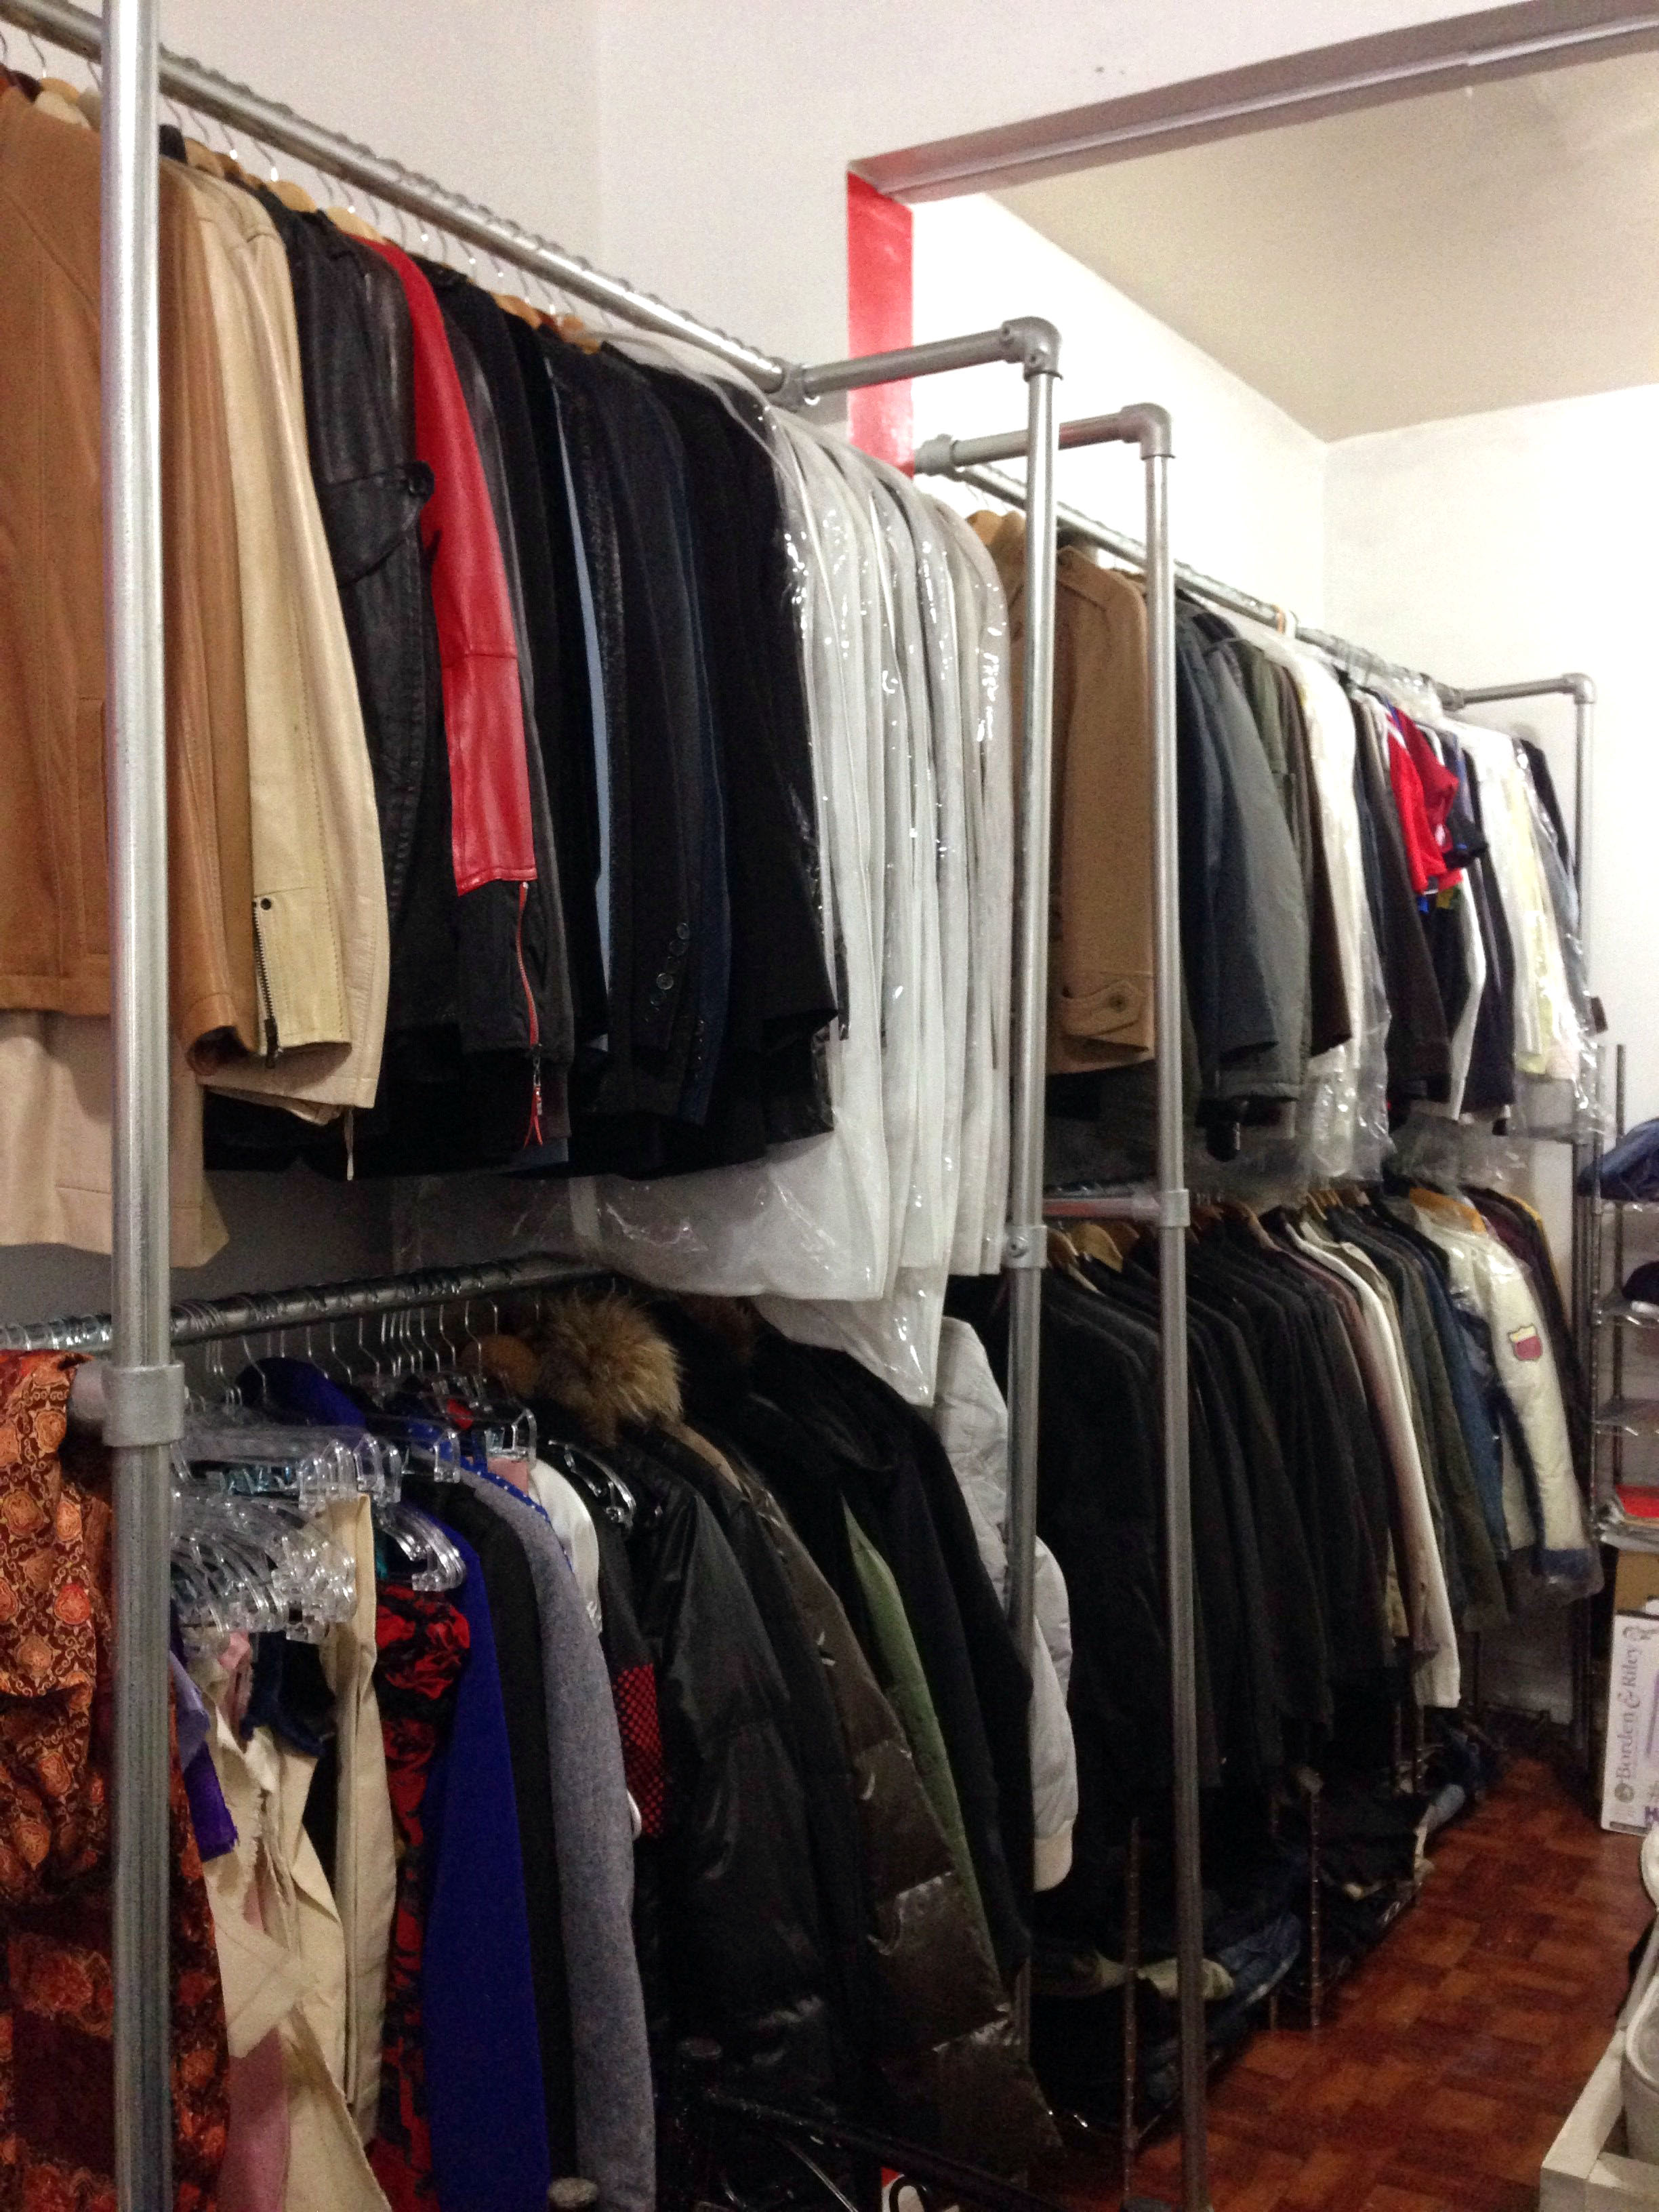 is silver rack concept drying them free metal can size incridible duty clothing clothes one heavy rustproof honey heavyy do photos full standing perfect wardrobe each freestanding of